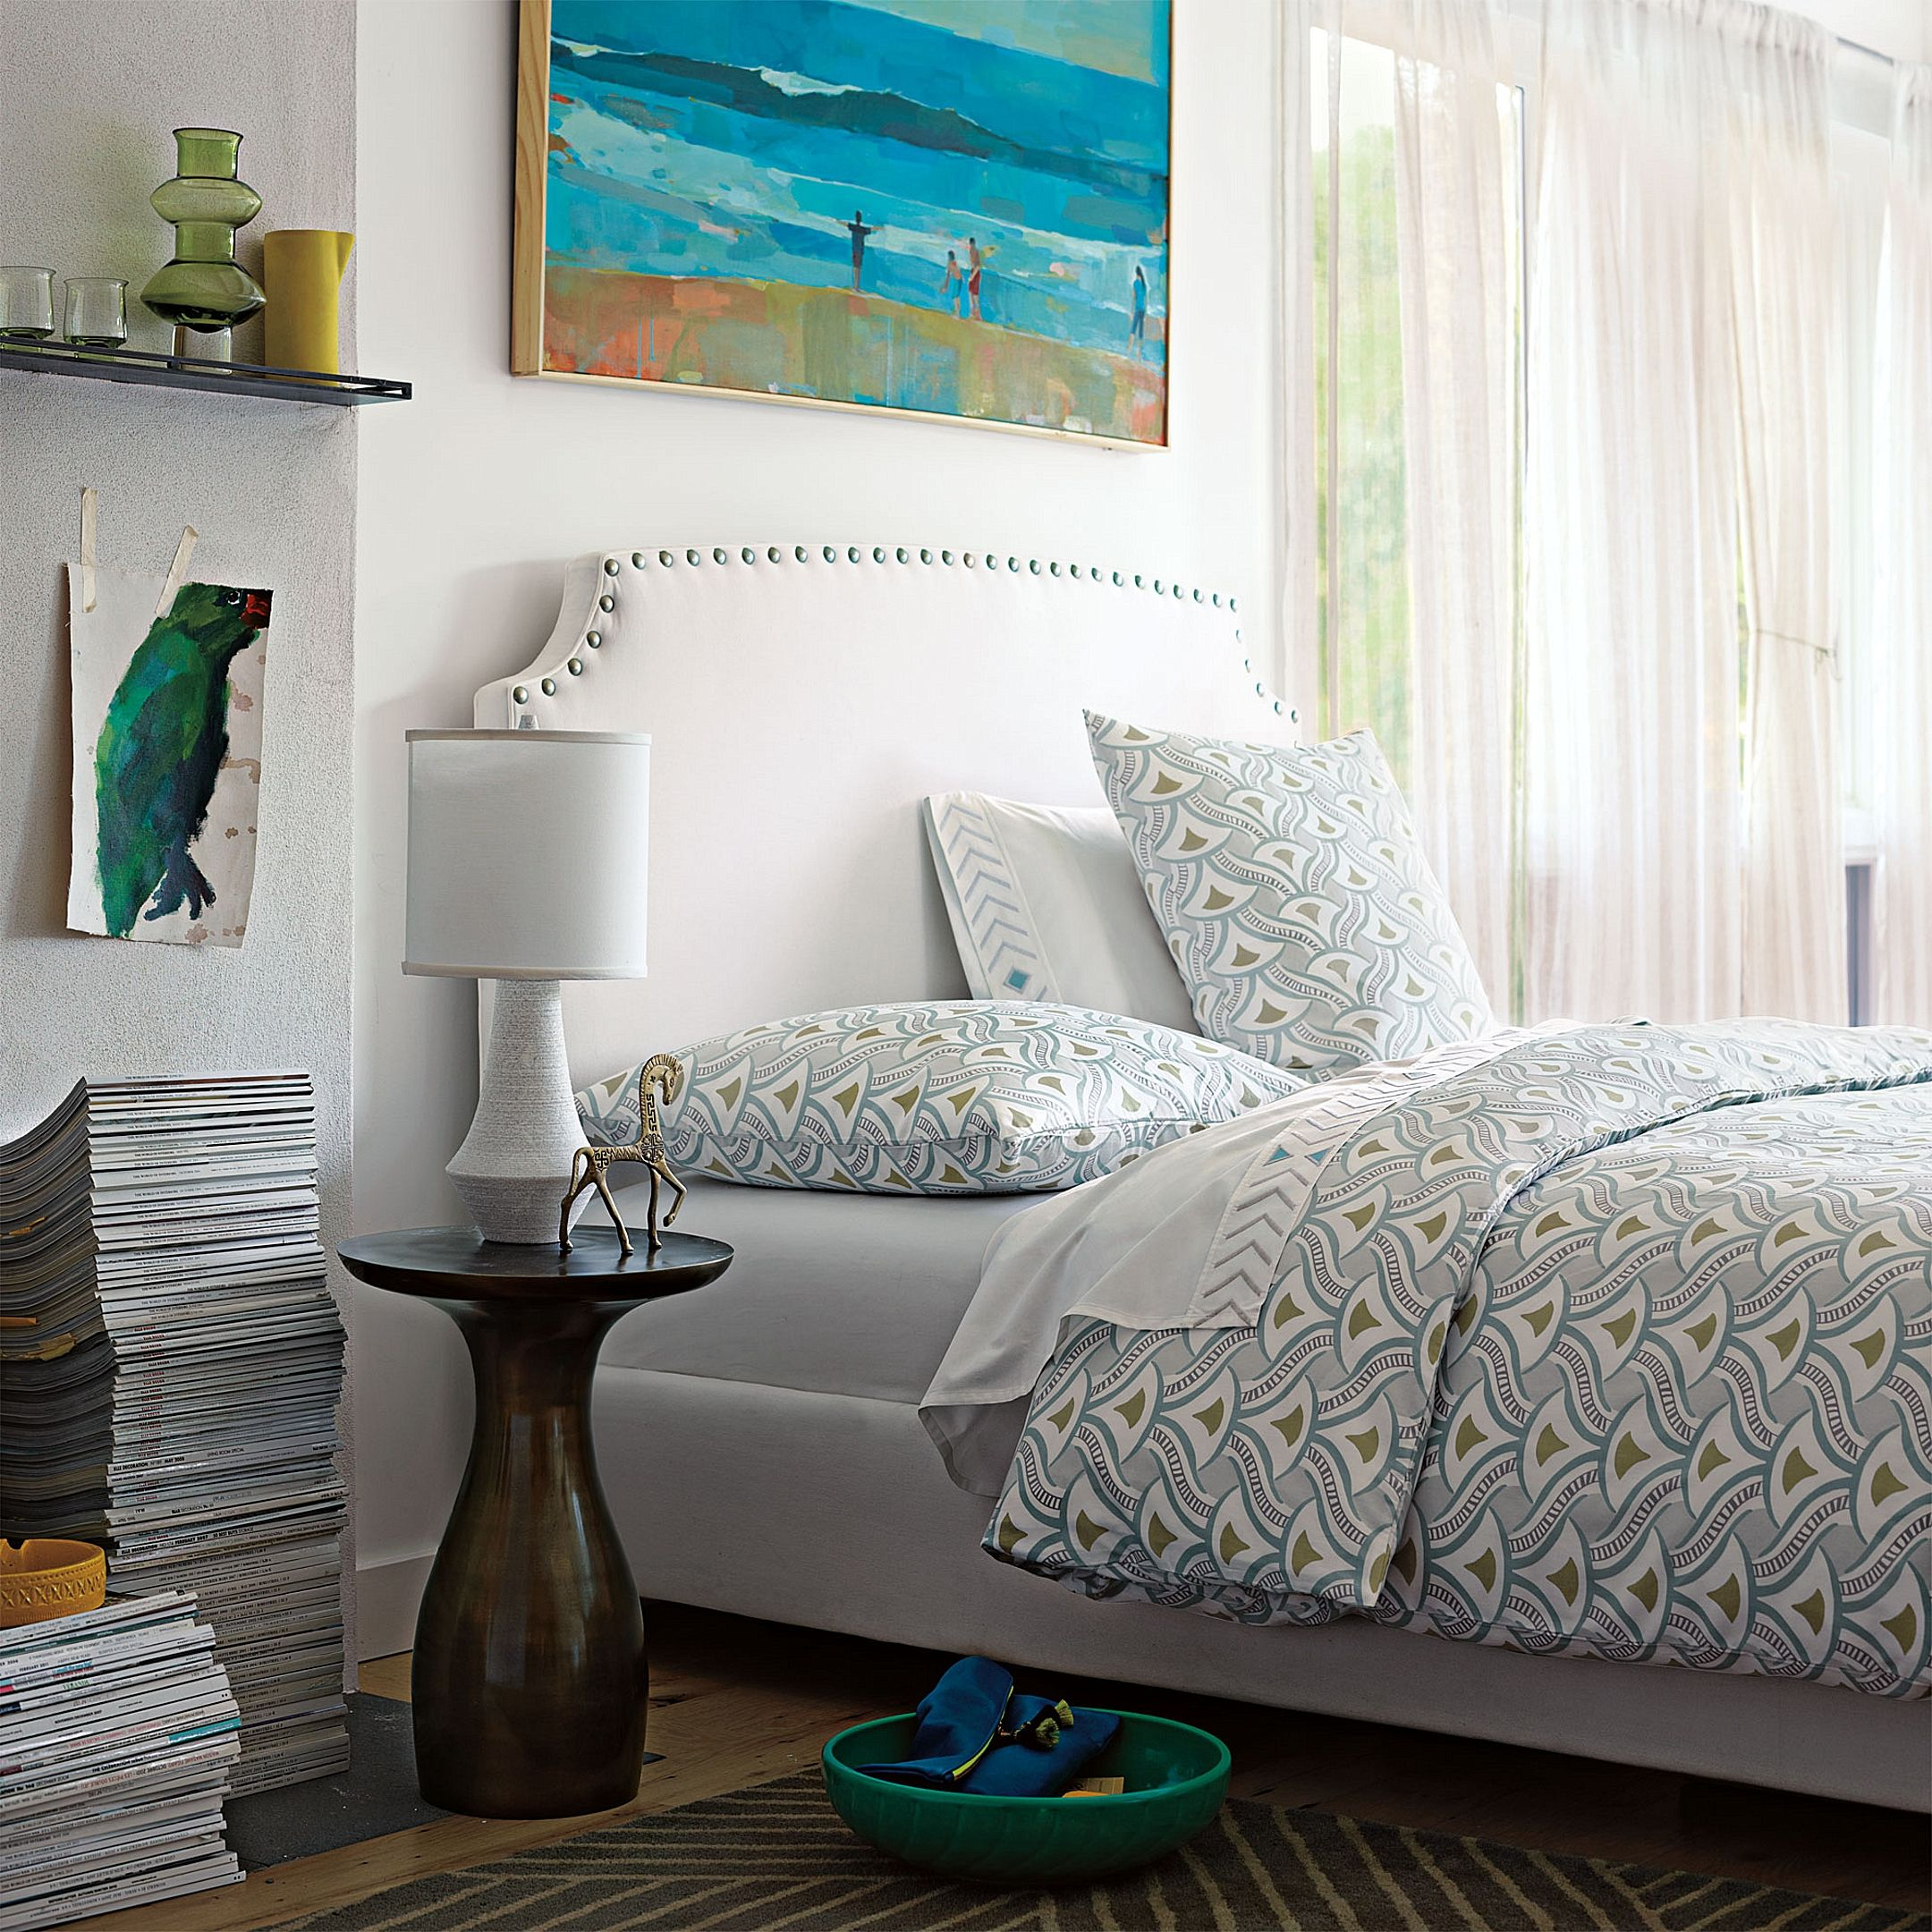 Custom Upholstered Fillmore Bed with Nailheads in Designer Fabrics | Serena & Lily